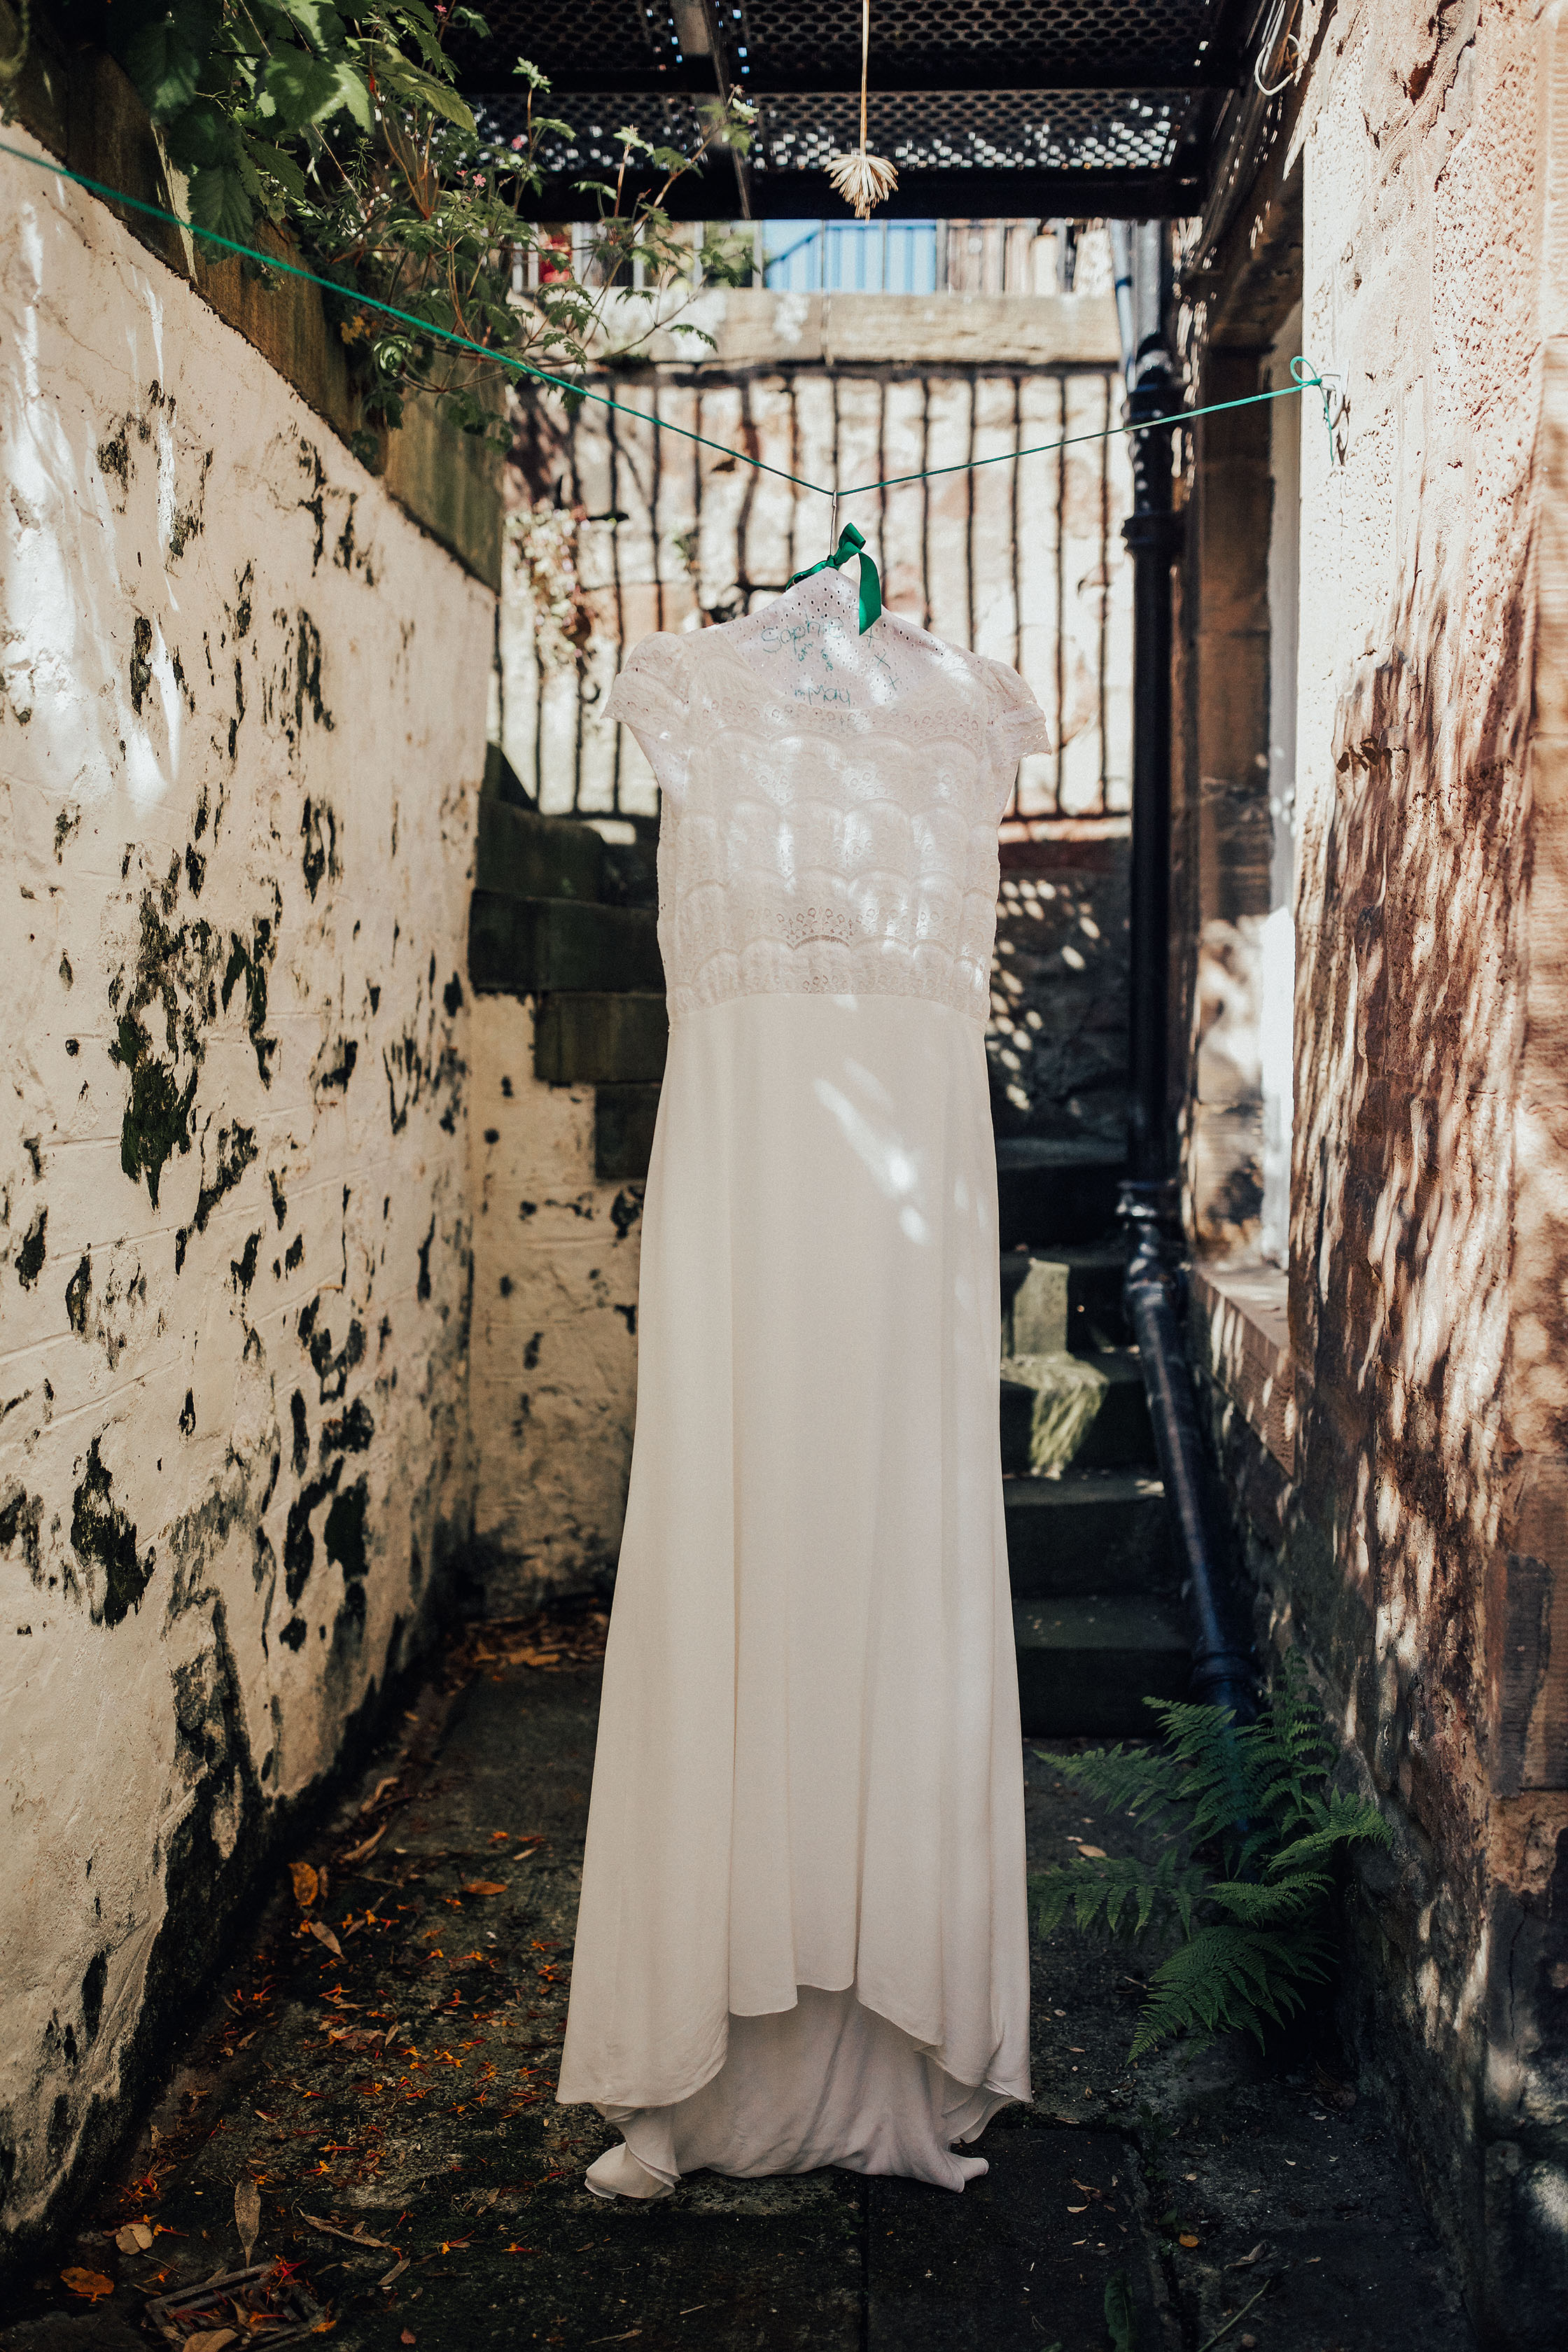 TIMBERYARD_EDINBURGH_WEDDING_PJ_PHILLIPS_PHOTOGRAPHY_4.jpg